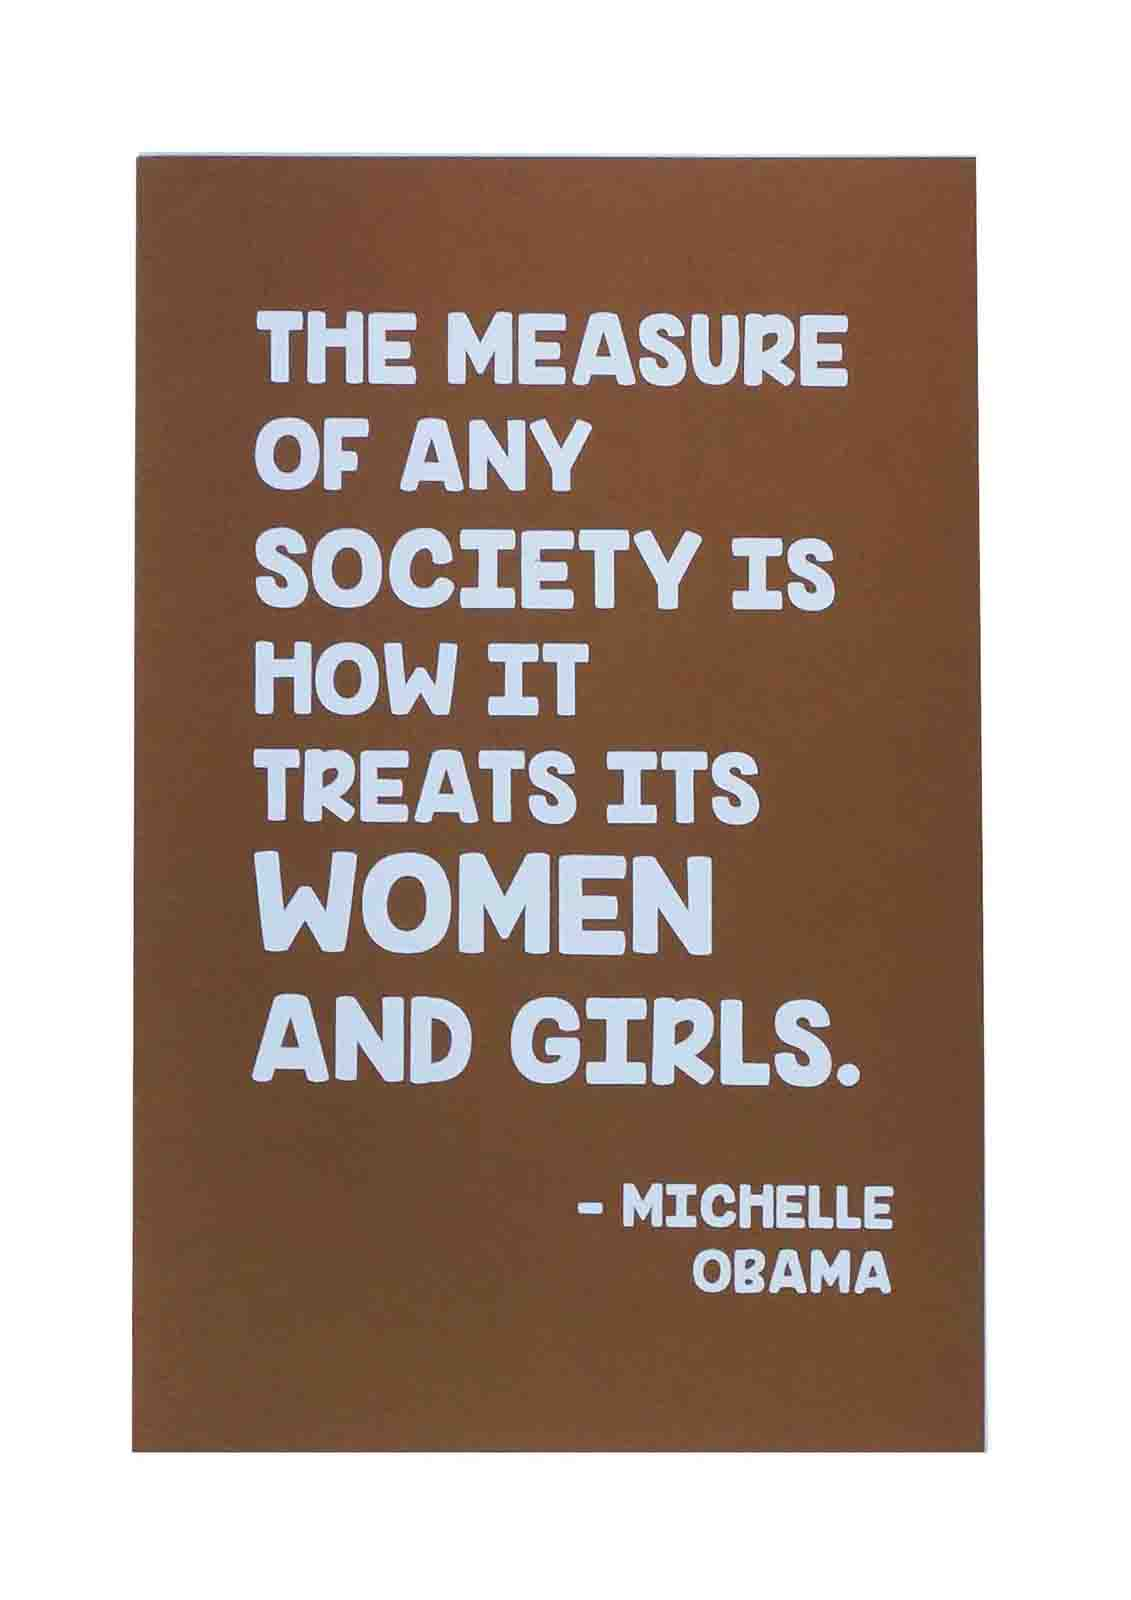 Ape_Bleakney_'The Measure Of Any Society' Women's March Poster on Speckltone Brown, 12.5''x19''.jpg